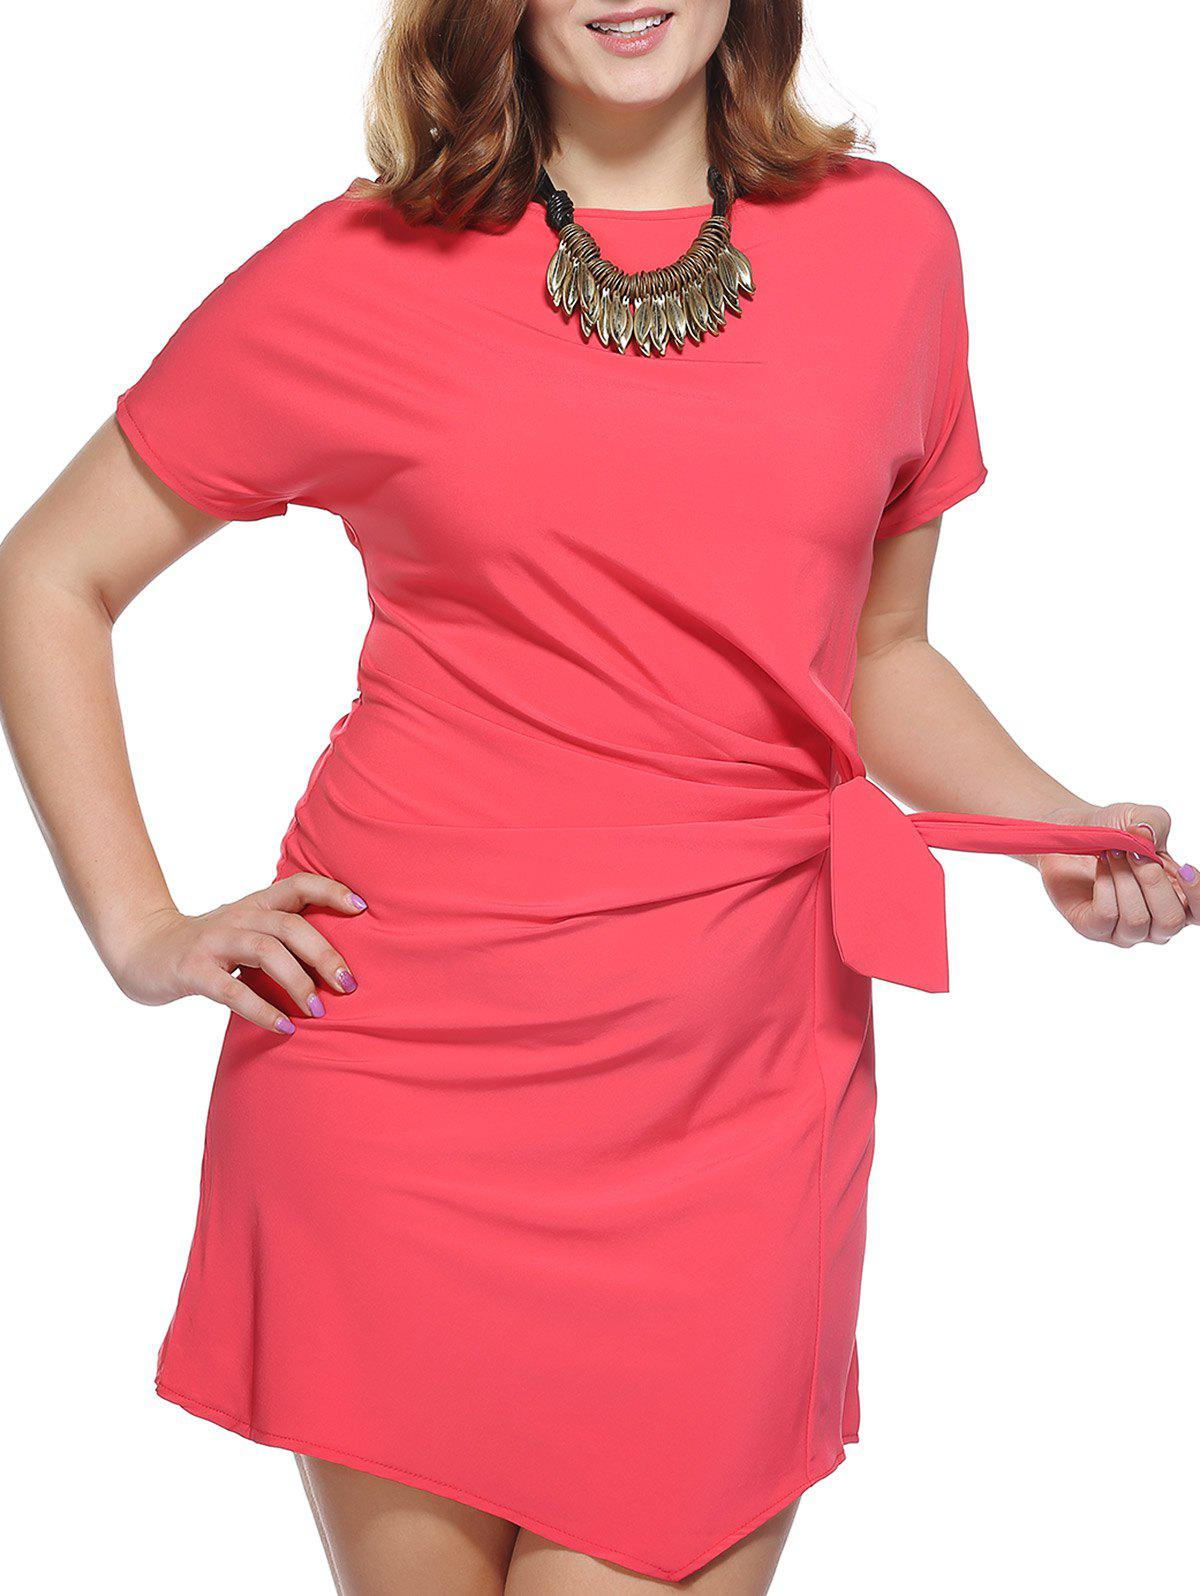 Chic Plus Size Bowknot Embellished Solid Color Women's Dress - RED 5XL